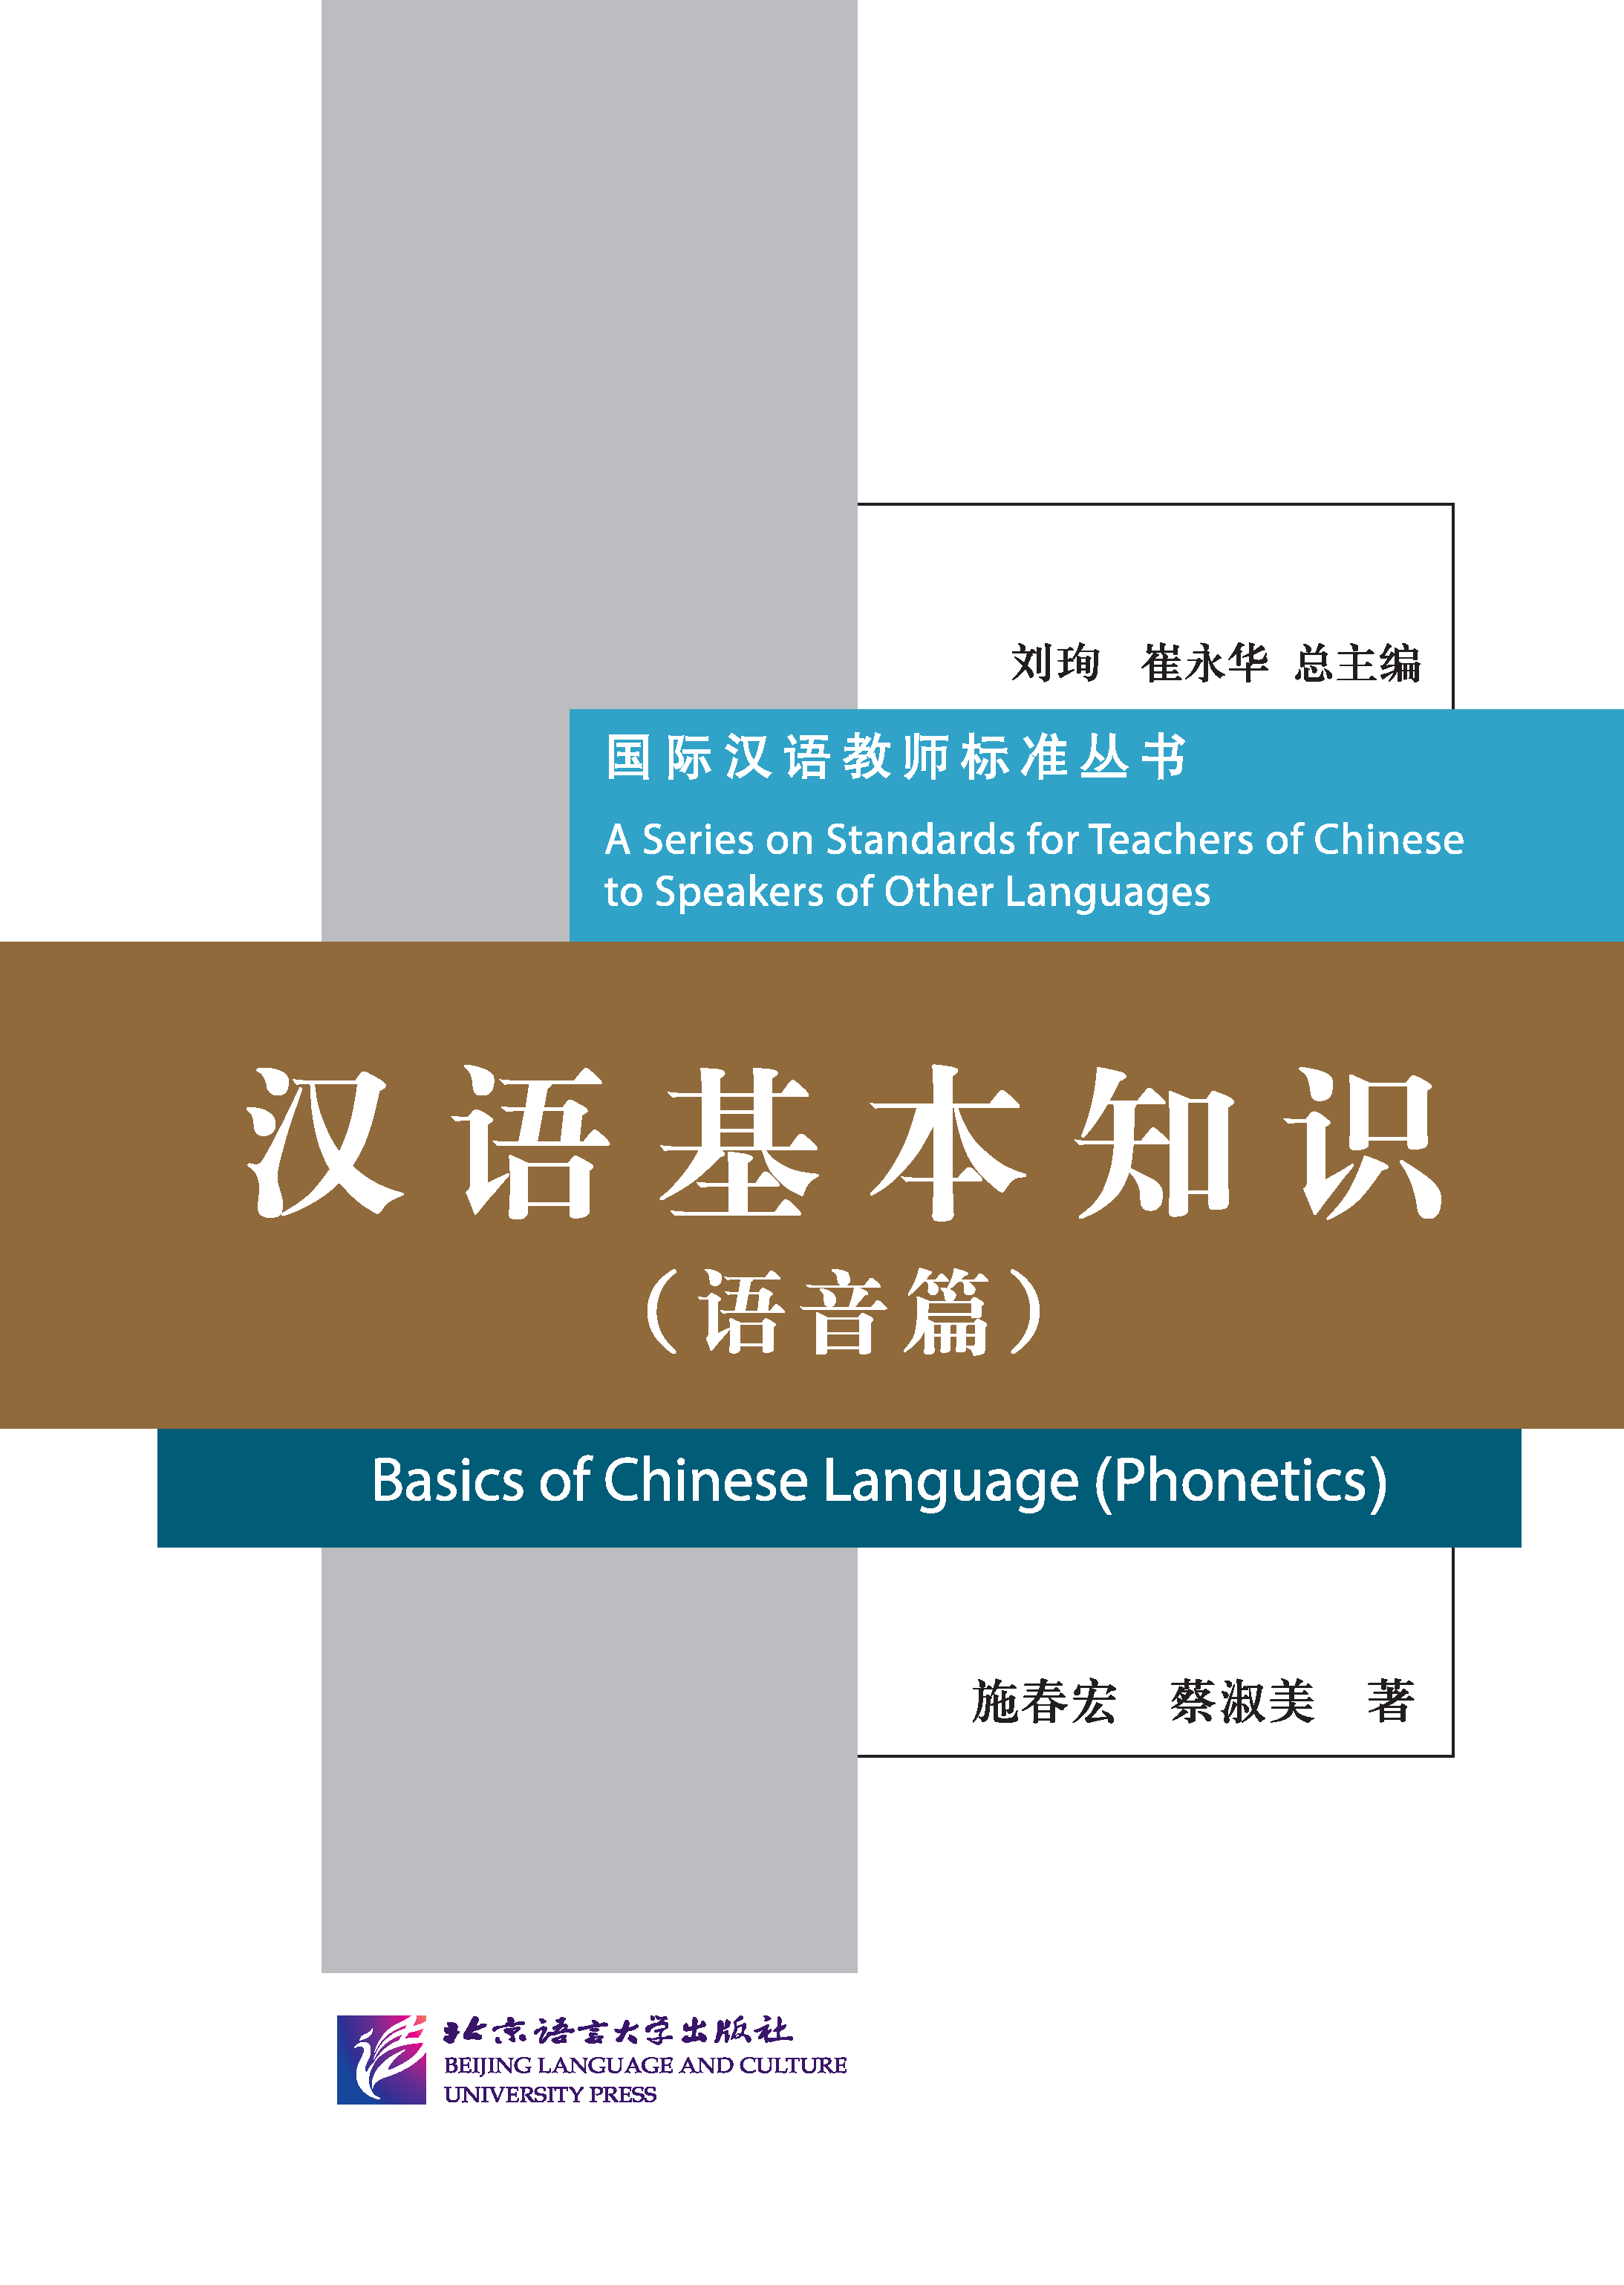 汉语基本知识(语音篇)| 国际汉语教师标准丛书 A Series on Standards for Teachers of Chinese to Speakers of Other Languages: Basics of Chinese Language (Phonetics)